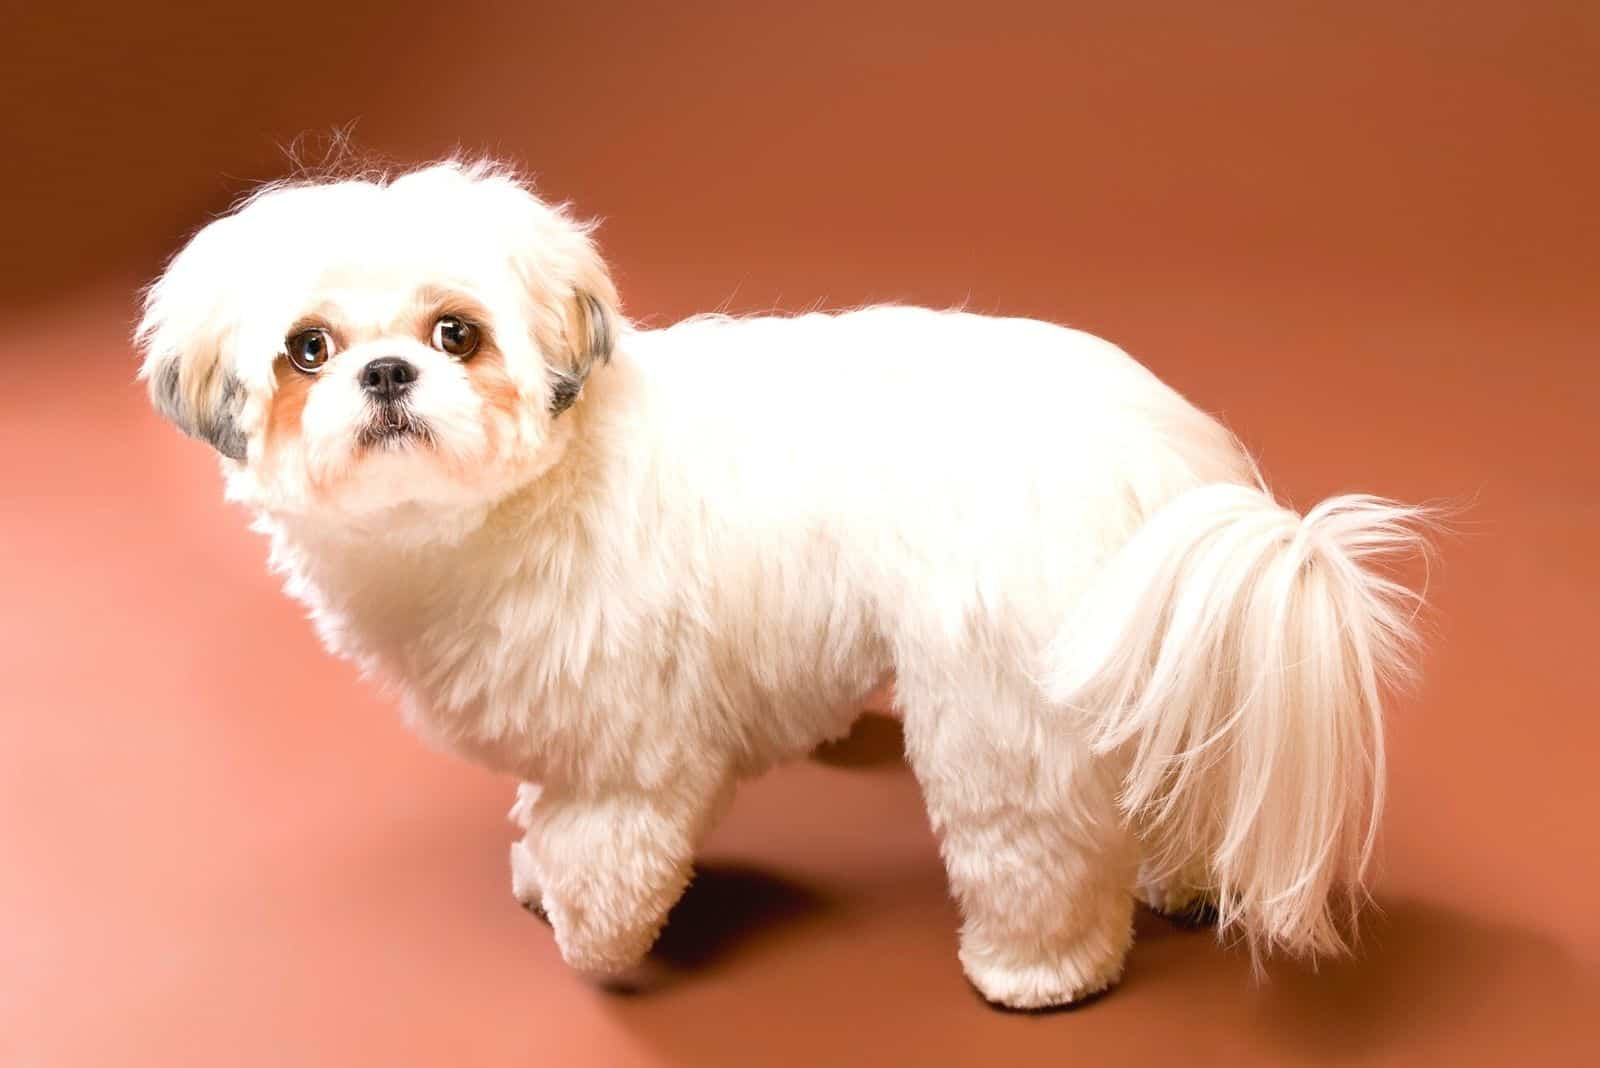 sideview of white shih tzu dog looking back at the camera on high angle